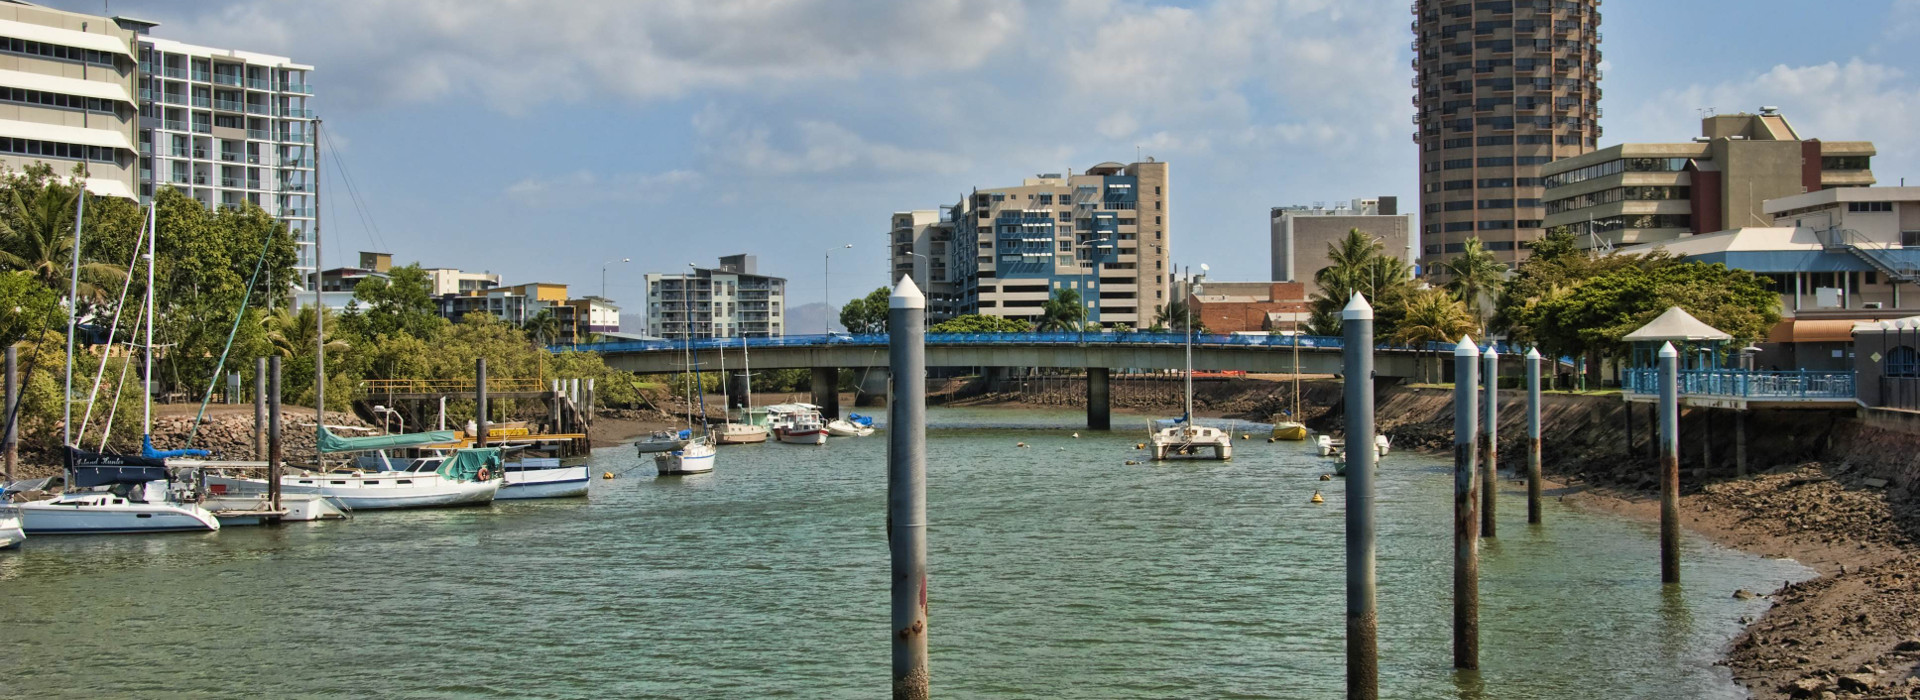 Townsville Image